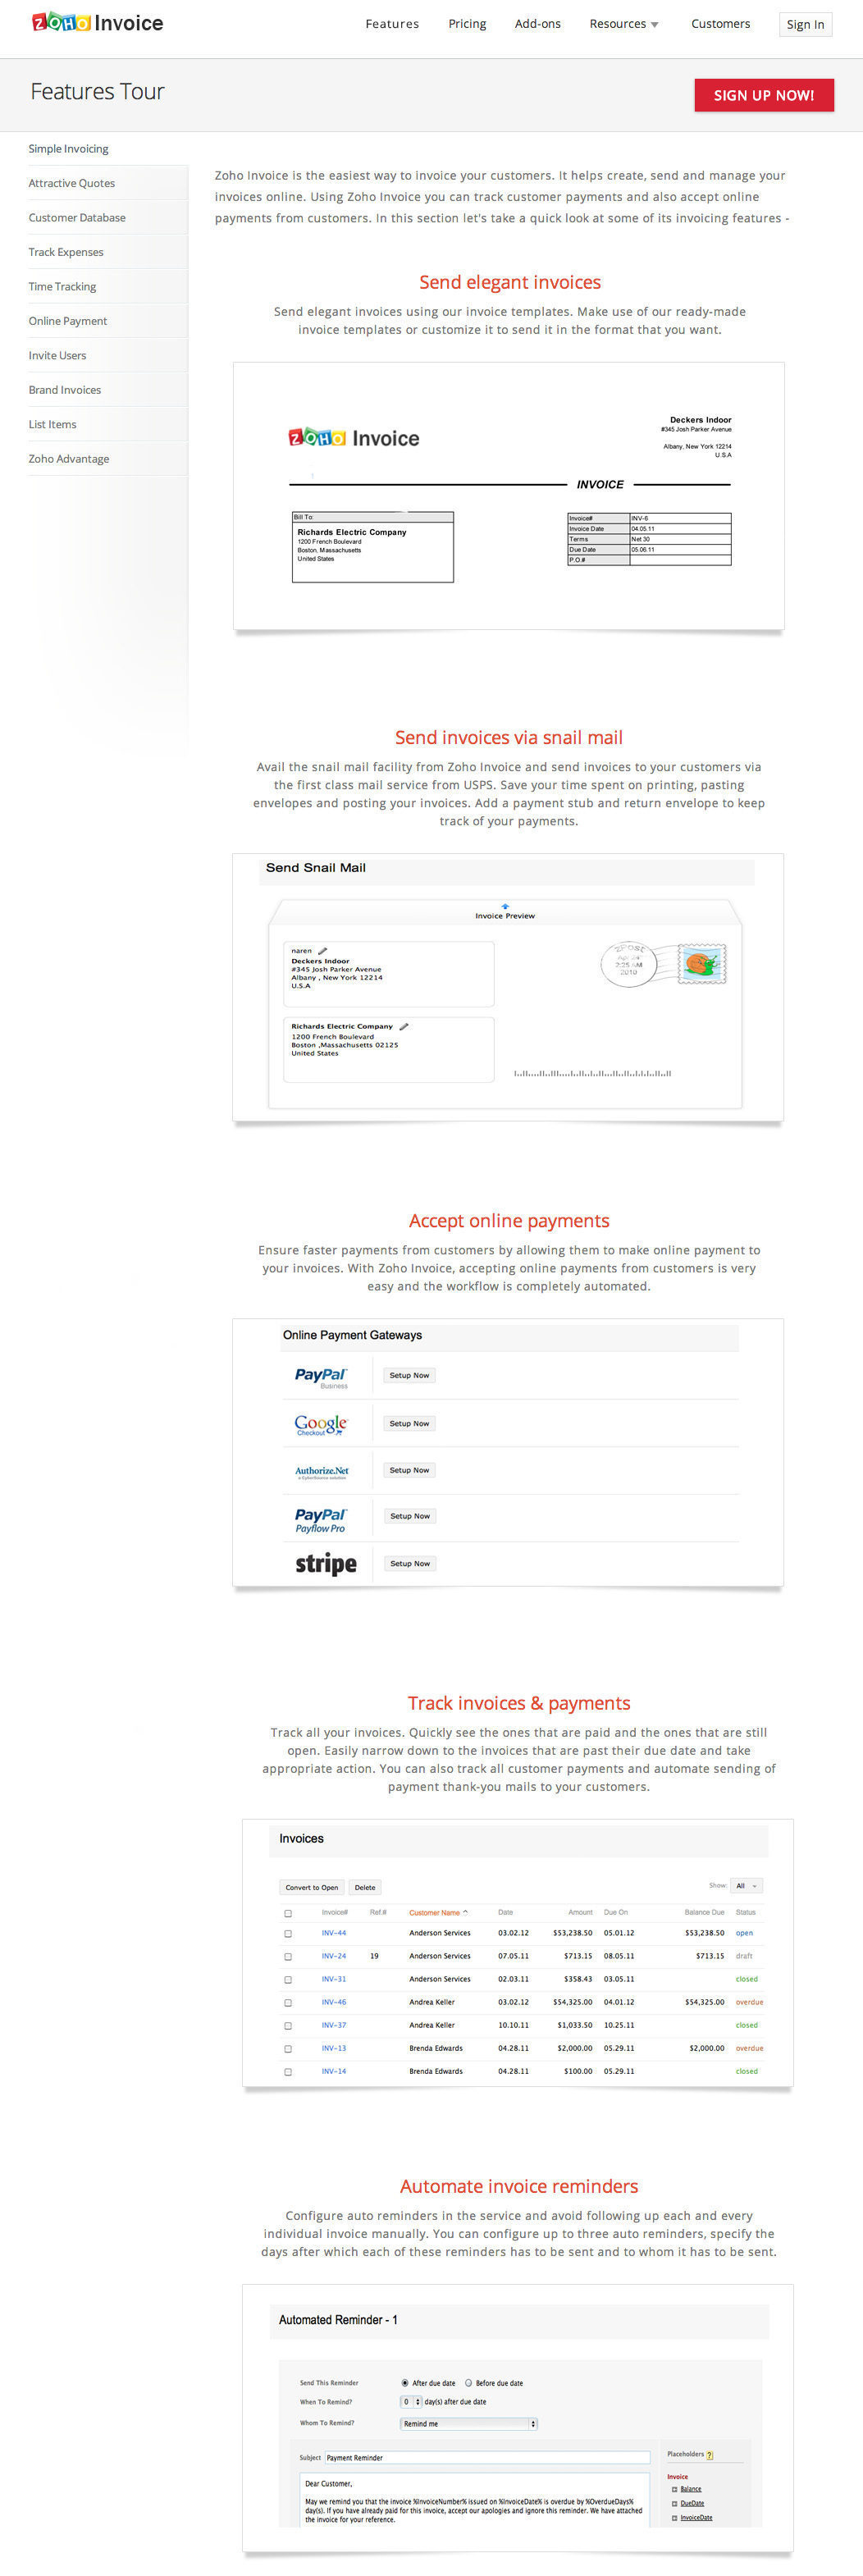 Helpingtohealus  Pleasant Top  Complaints And Reviews About Zoho Invoice With Remarkable Zoho Invoice Pricing Zoho Invoice  Simple Invoicing  With Delectable Example Of Invoices Also Invoice Fob In Addition Invoice Template Illustrator And Business Invoice Templates As Well As Invoice Design Template Additionally Make A Free Invoice From Consumeraffairscom With Helpingtohealus  Remarkable Top  Complaints And Reviews About Zoho Invoice With Delectable Zoho Invoice Pricing Zoho Invoice  Simple Invoicing  And Pleasant Example Of Invoices Also Invoice Fob In Addition Invoice Template Illustrator From Consumeraffairscom